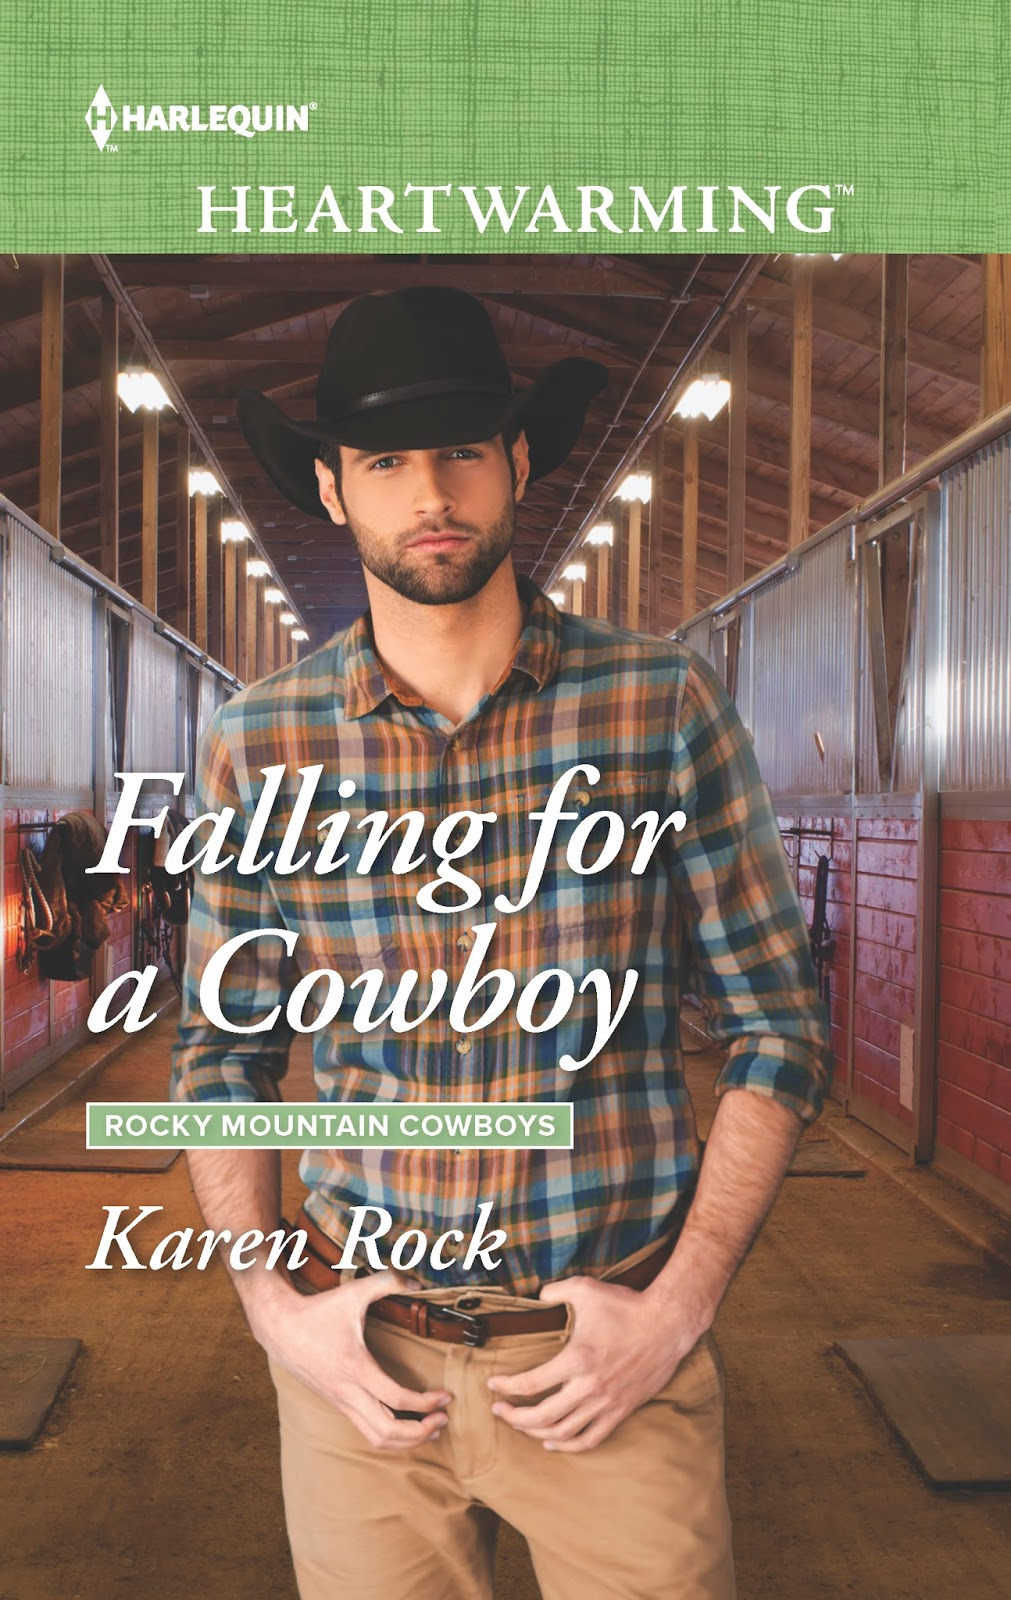 Bad boy rancher by karen rock excerpt blog tour giveaway falling for a cowboy rocky mountain cowboys 2 by karen rock contemporary romance paperback ebook 368 pages january 1st 2018 by harlequin heartwarming fandeluxe Choice Image